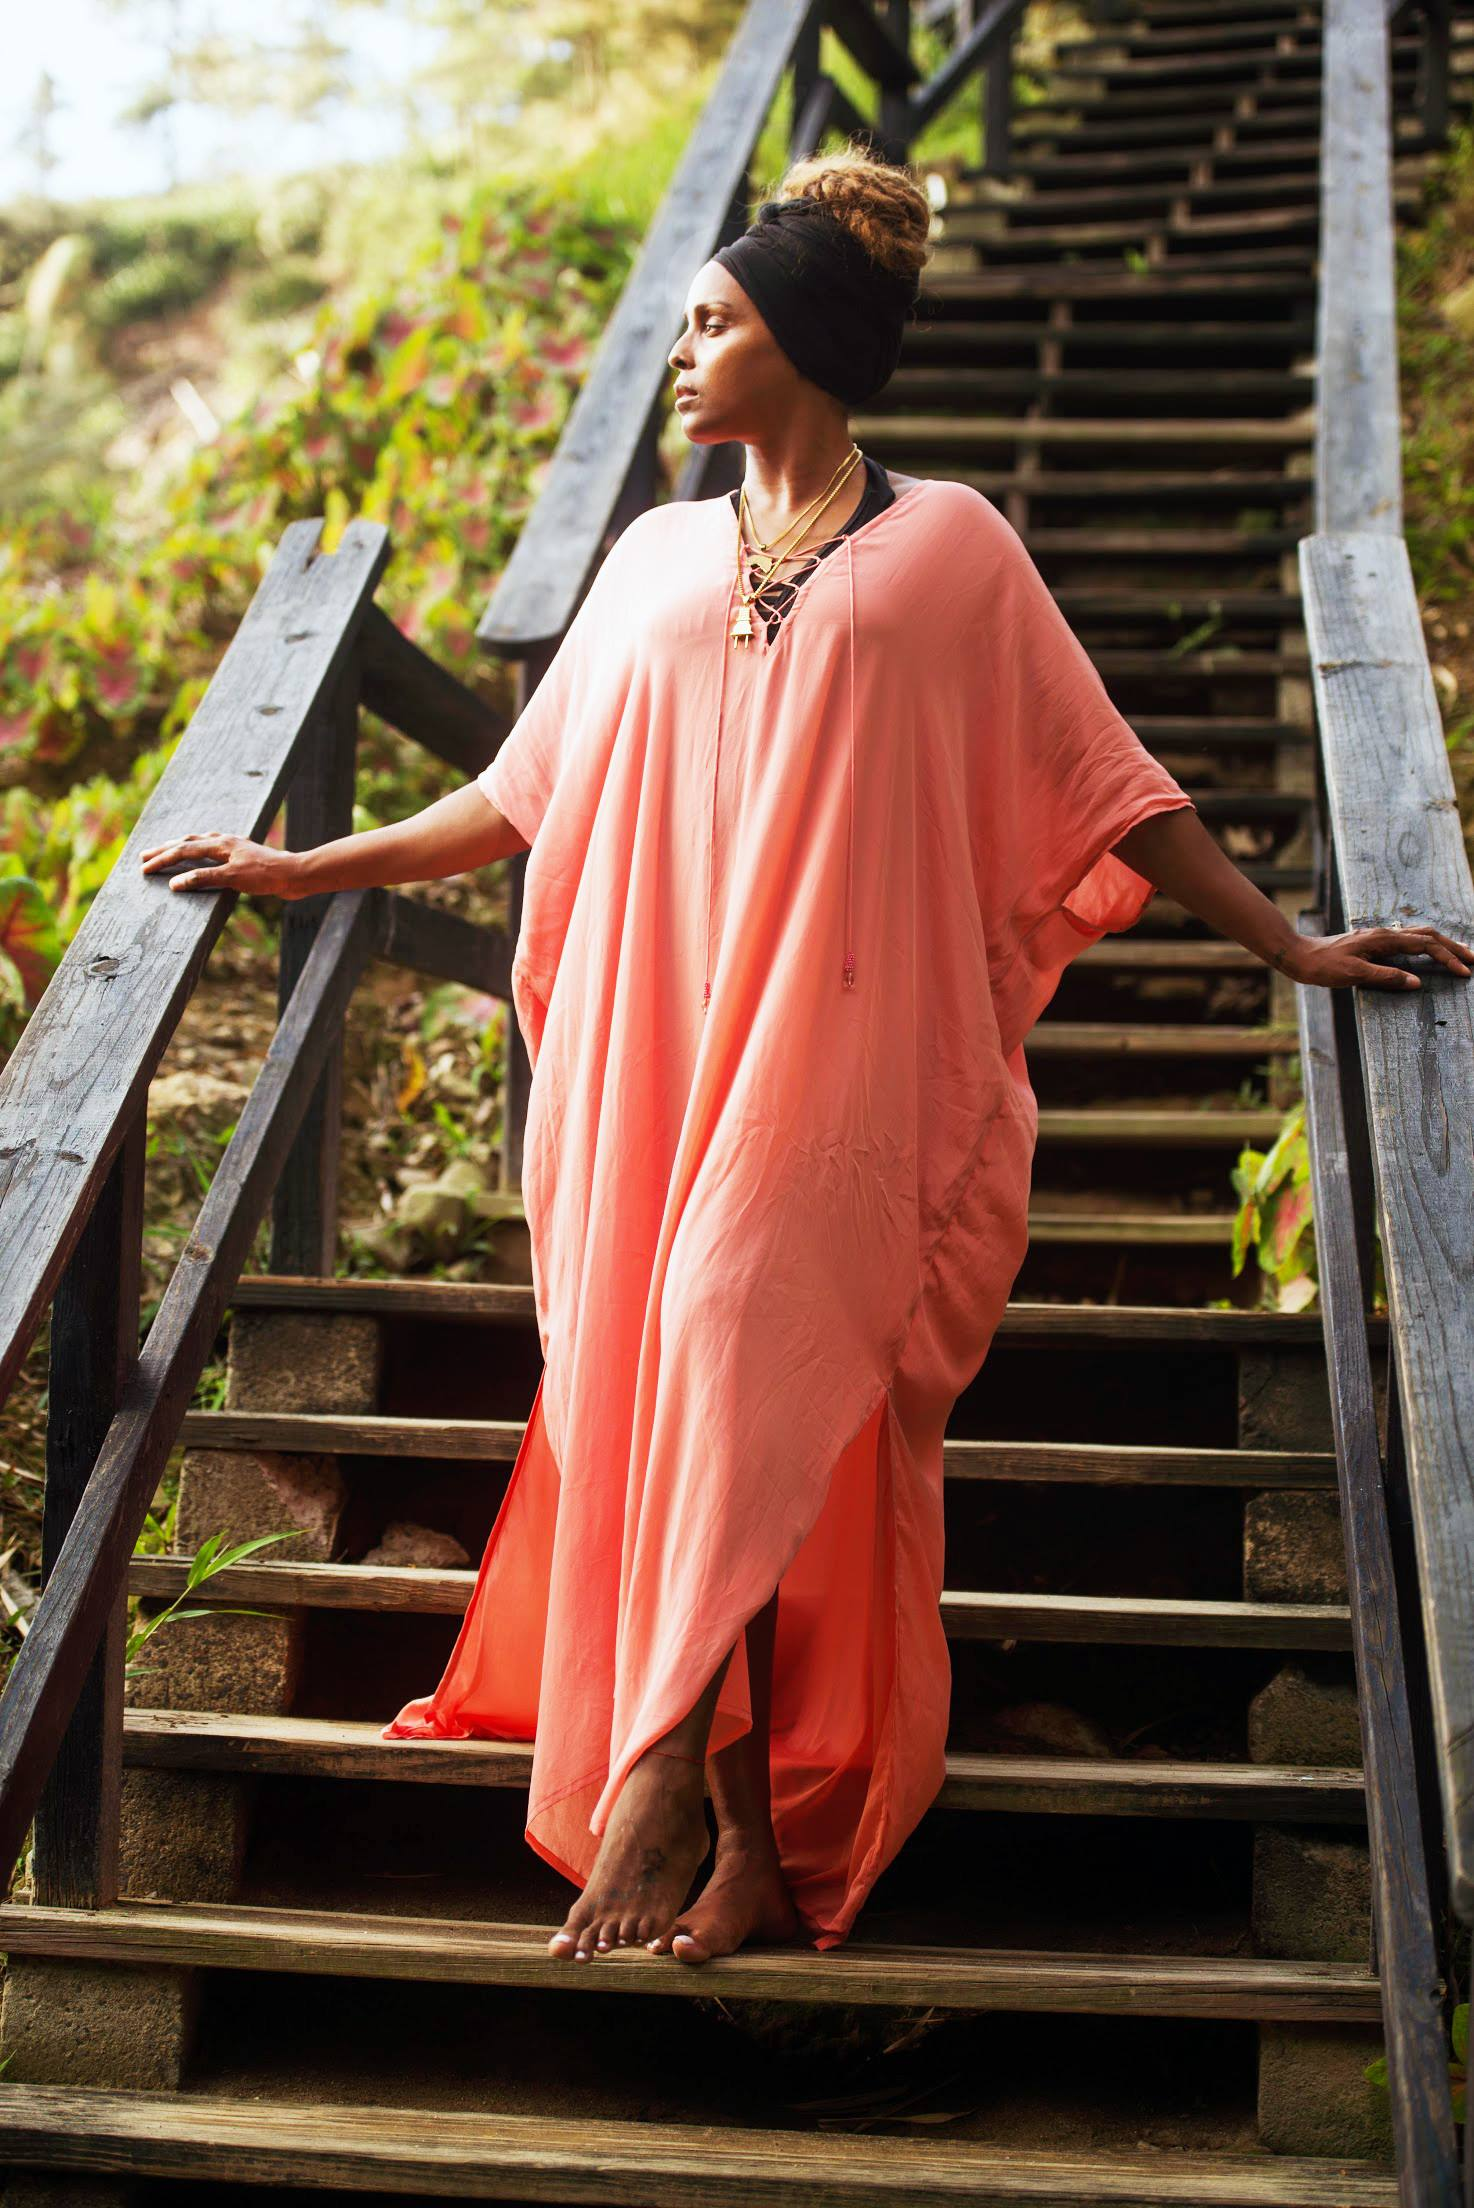 Singer-songwriter and producer, Angela Hunte, wears Shahida Parides in St Lucia.